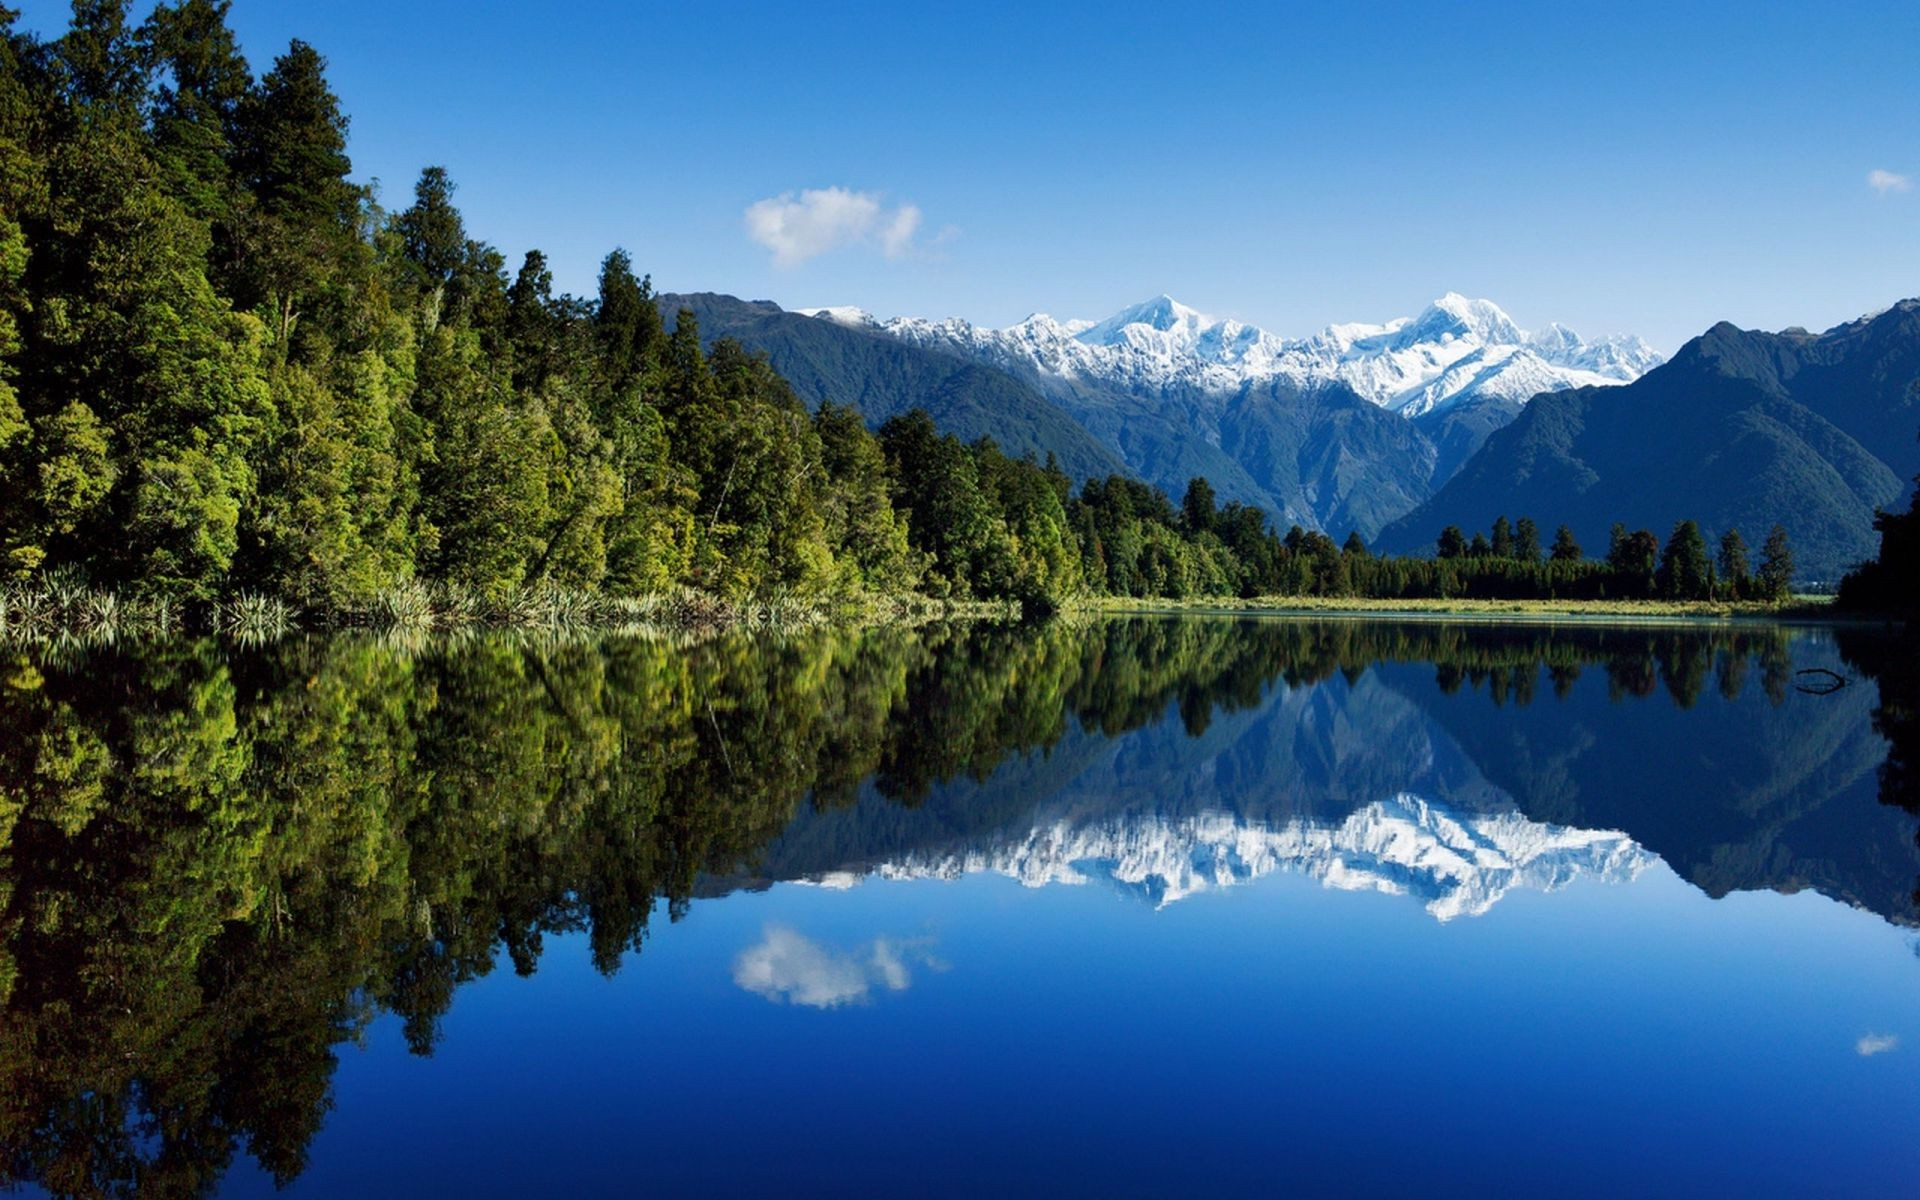 New Zealand scenery mountains lake forest